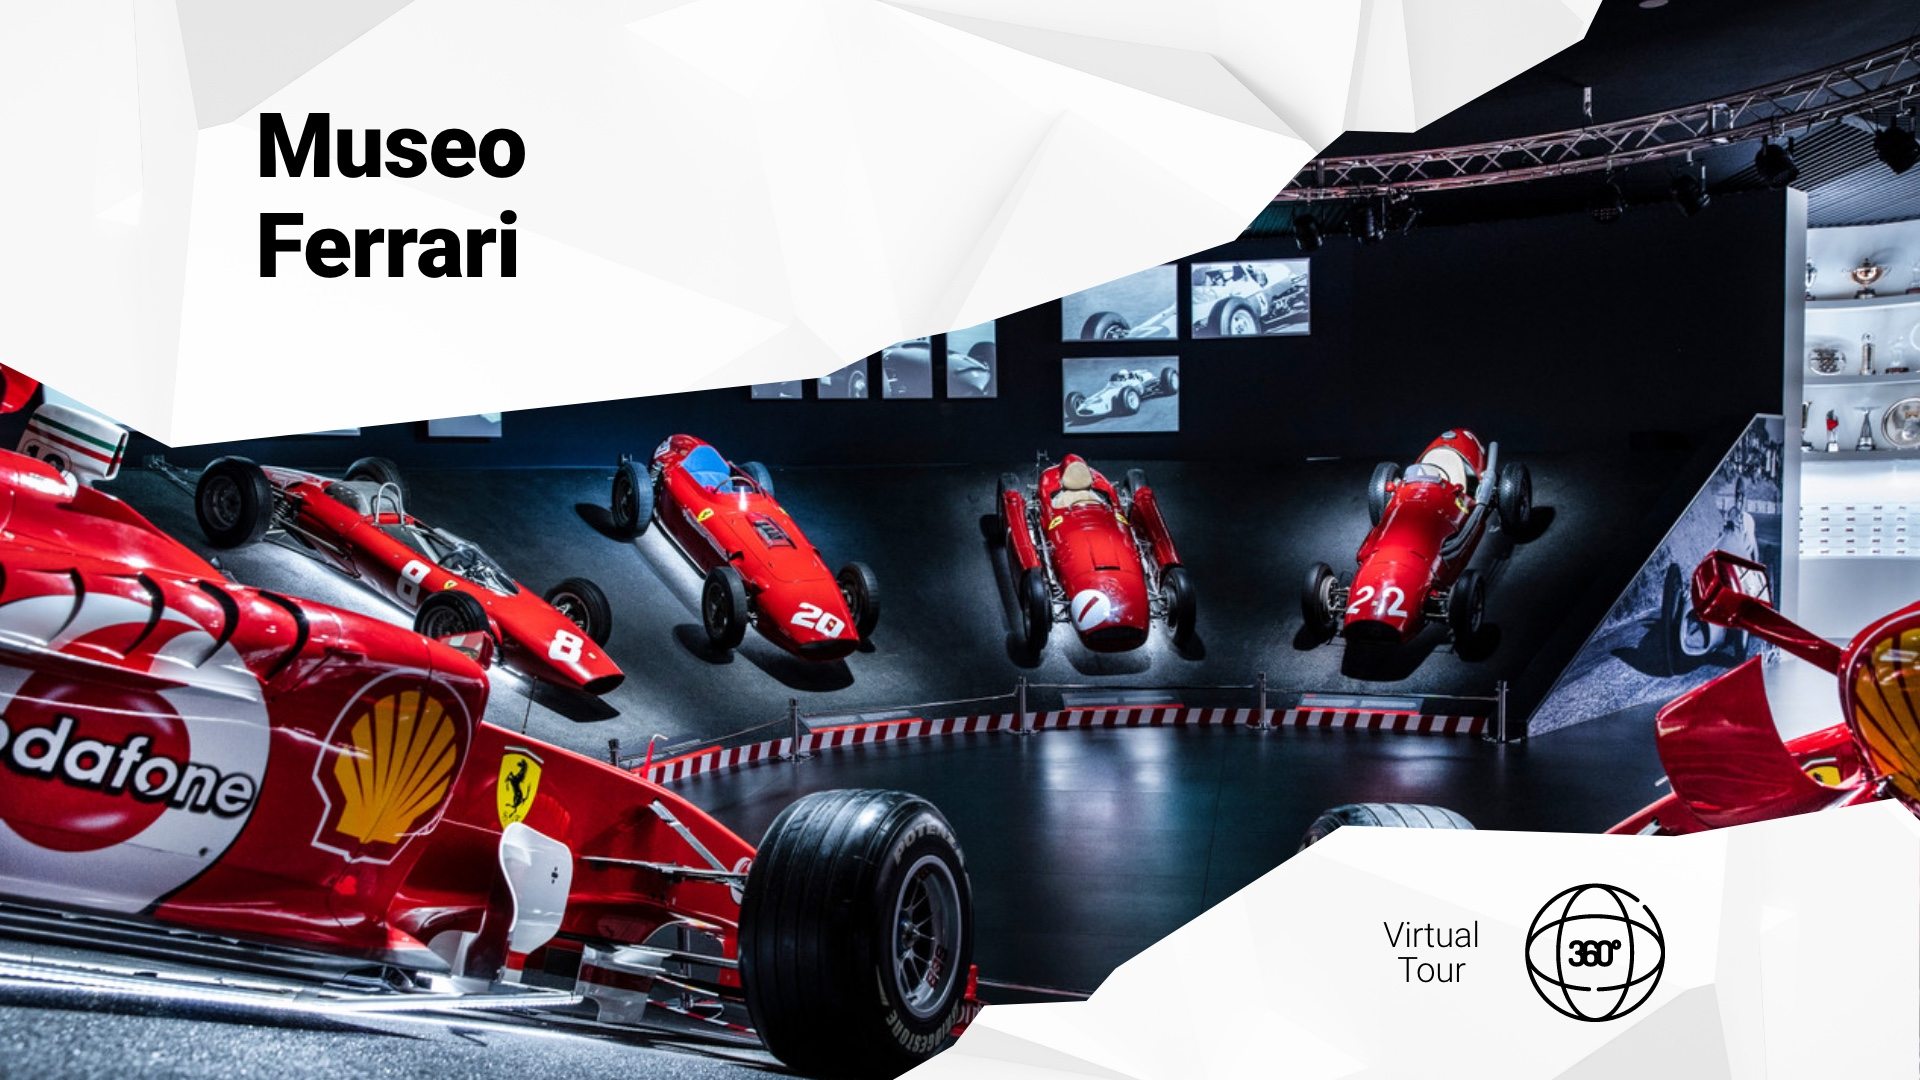 Motor Valley virtual tour: visit the Ferrari Museum.